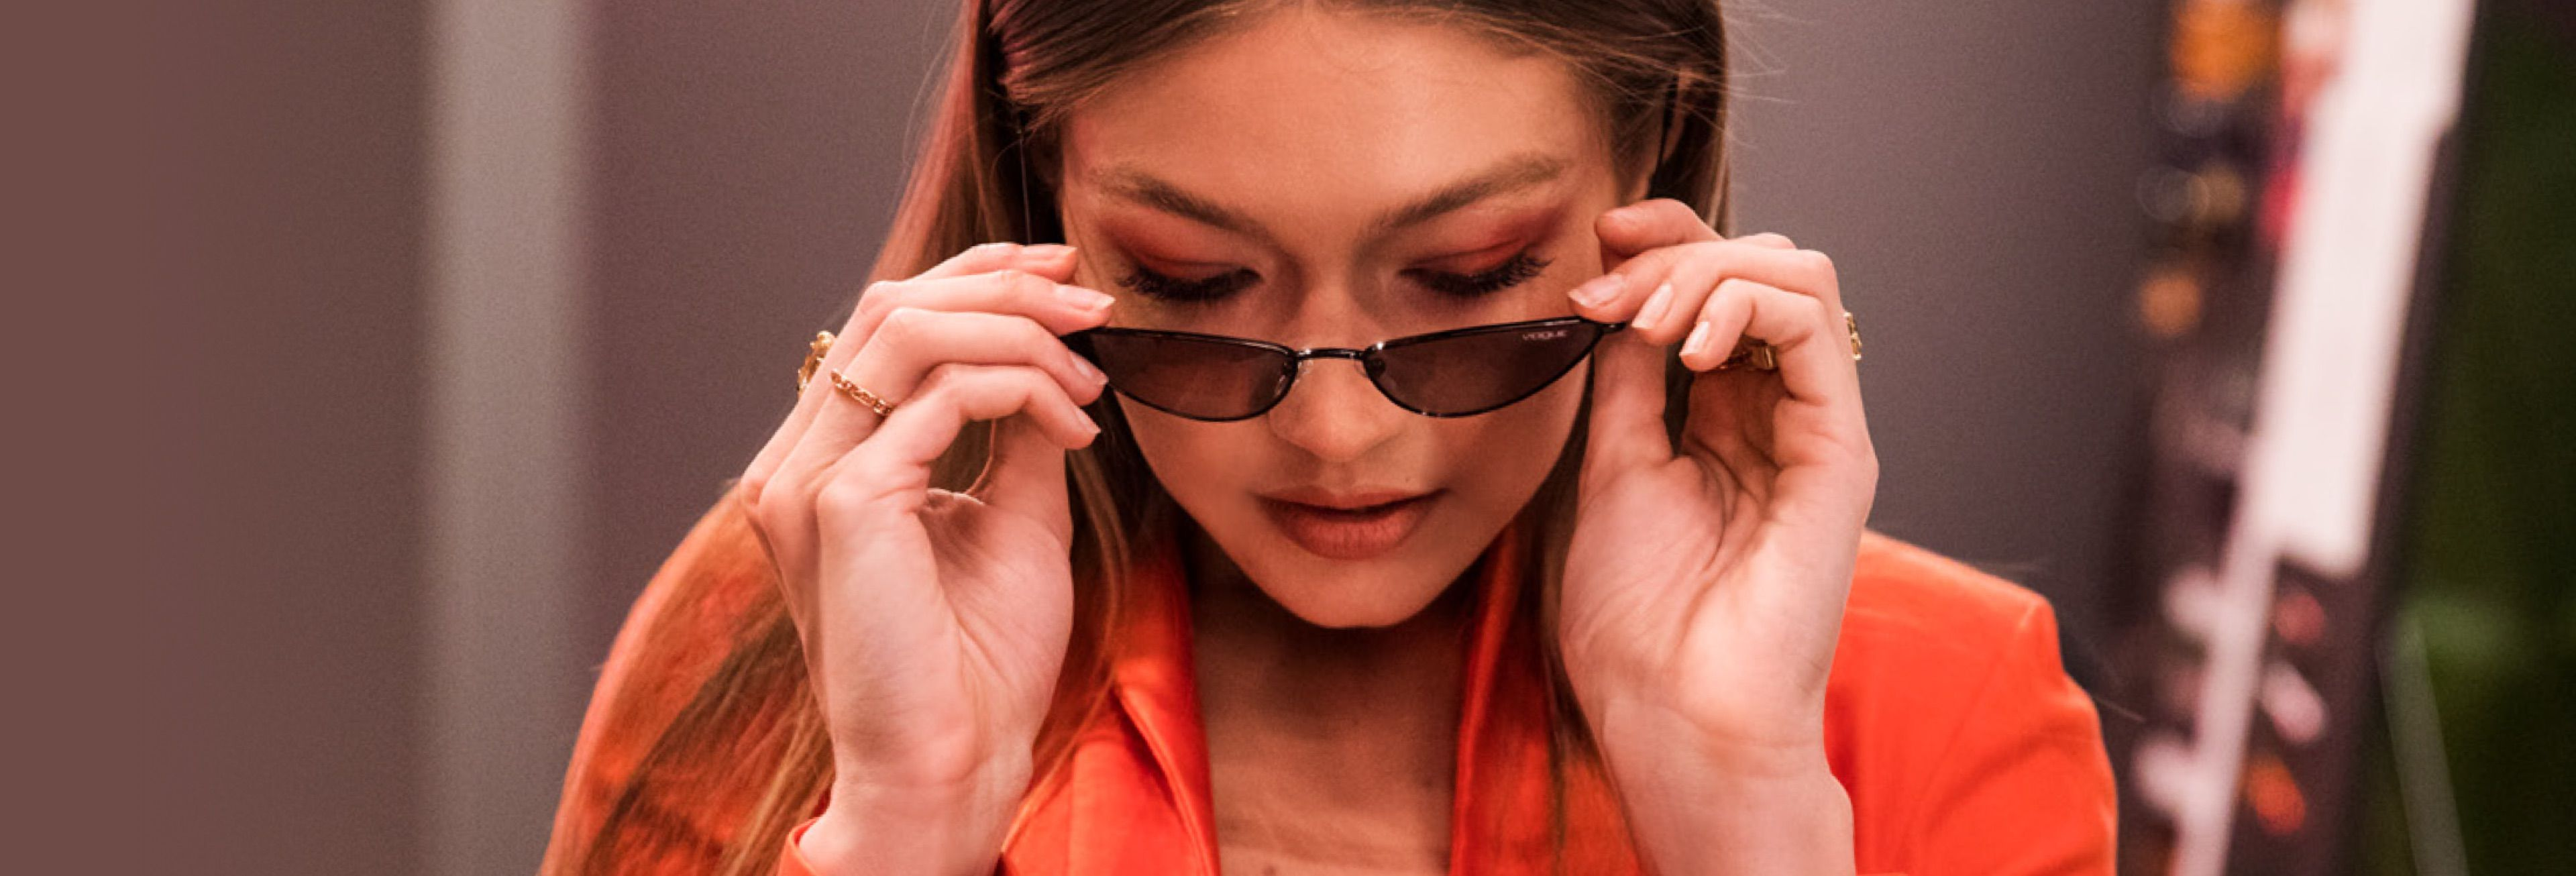 cbb8fde75a Gigi Hadid collection hero image